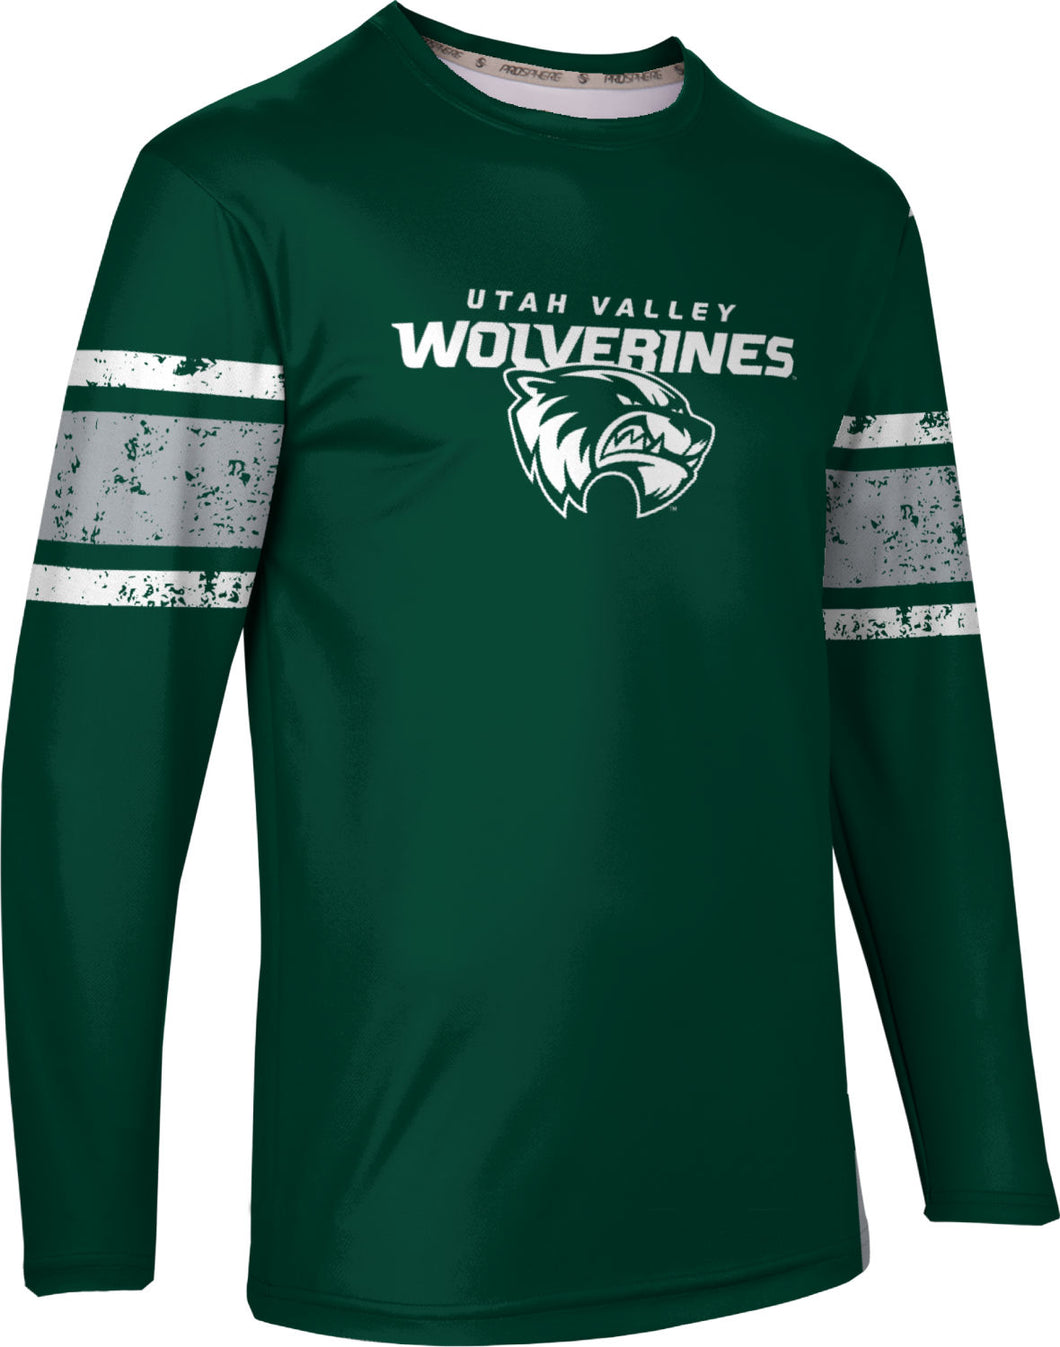 Utah Valley University: Men's Long Sleeve Tee - End Zone